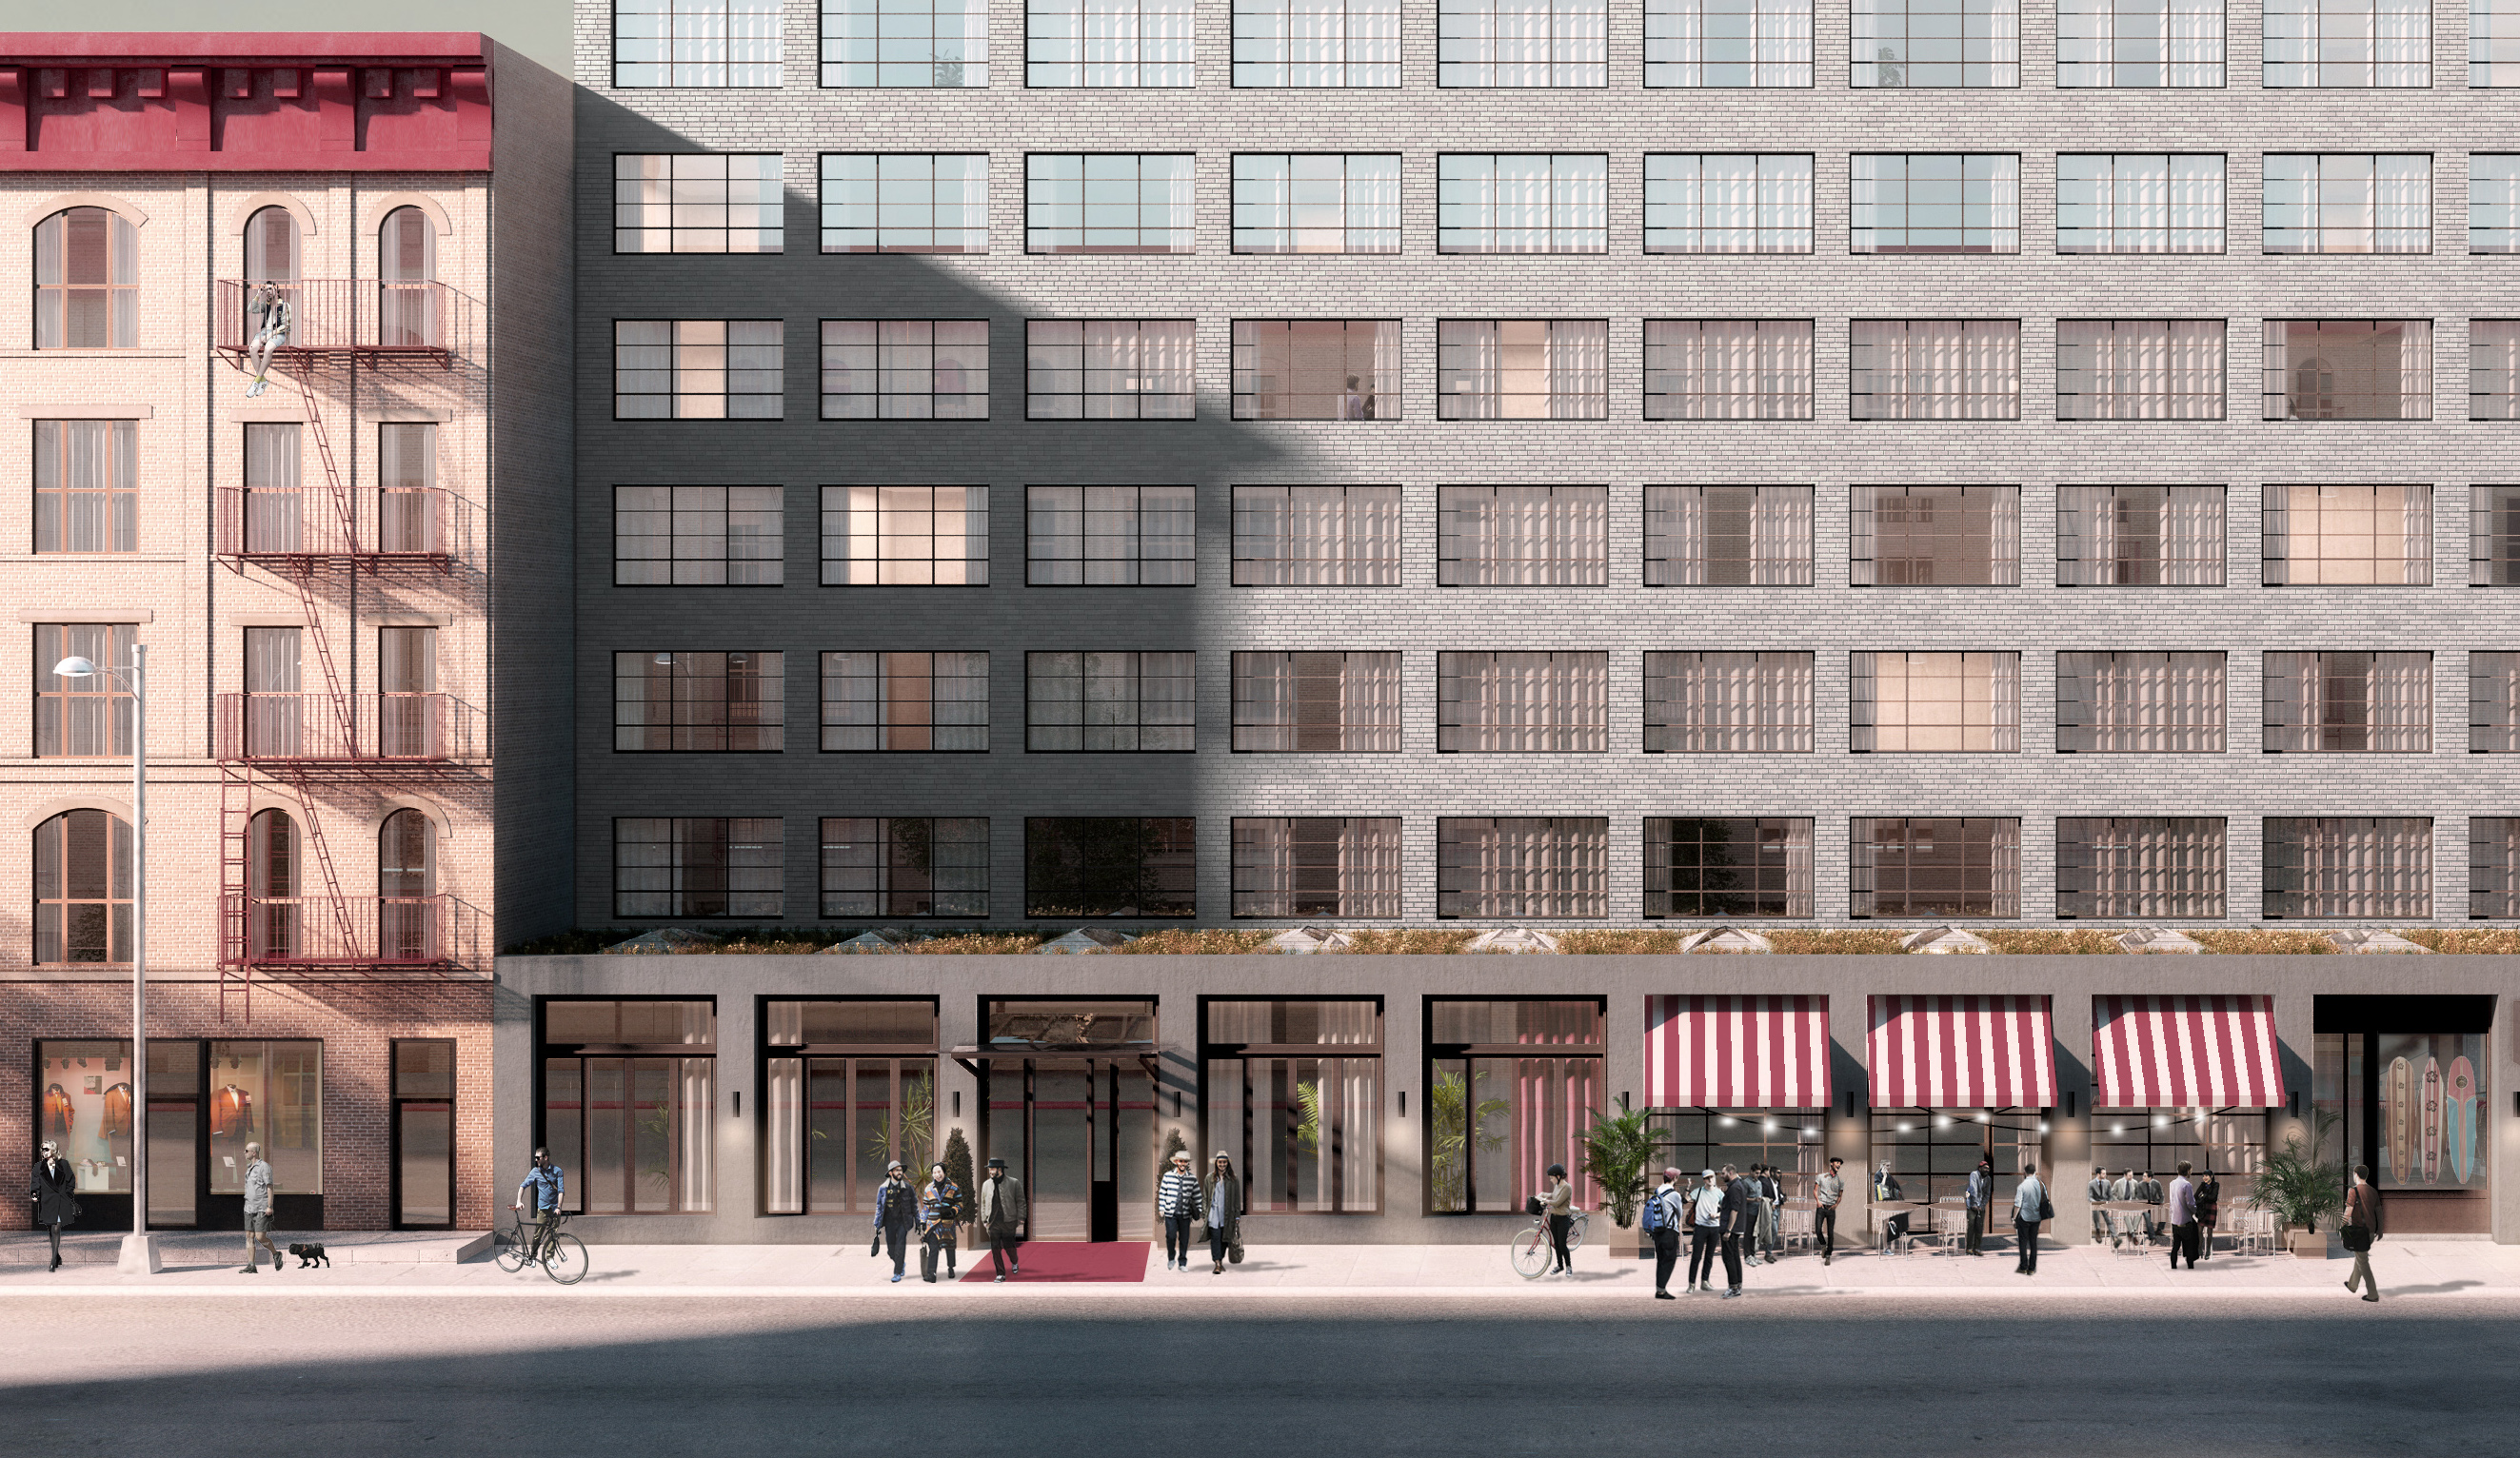 292 North 8th Street, rendering by Macro Sea